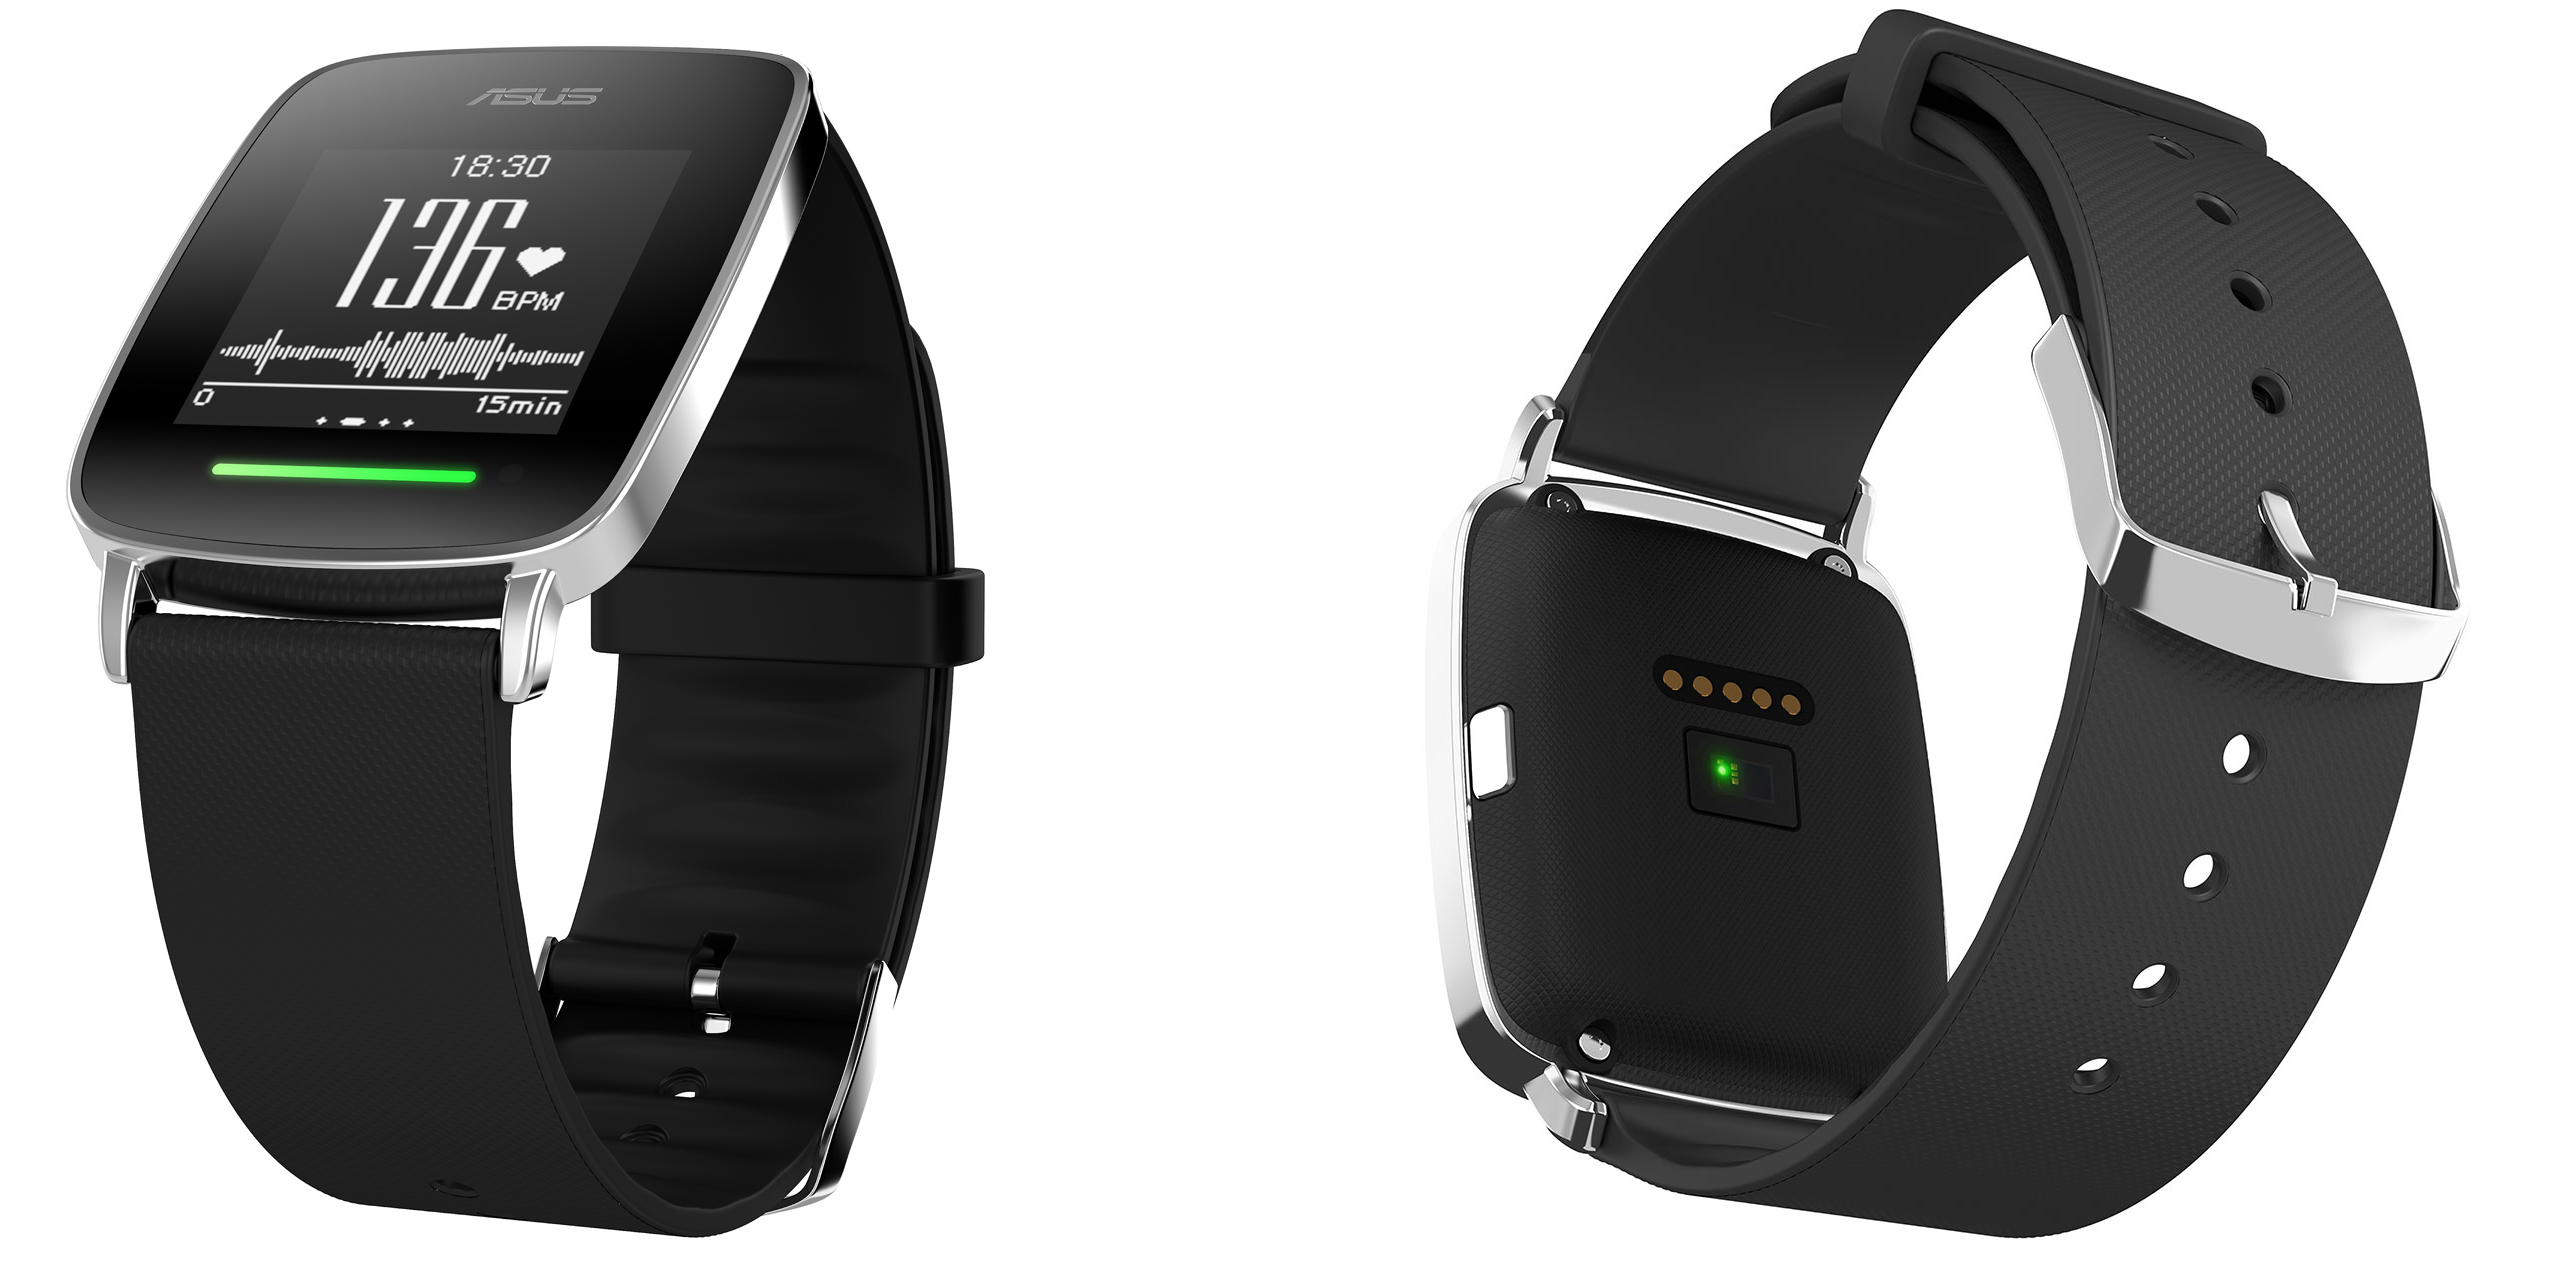 Asus VivoWatch, a smartwatch with autonomy for 10 days